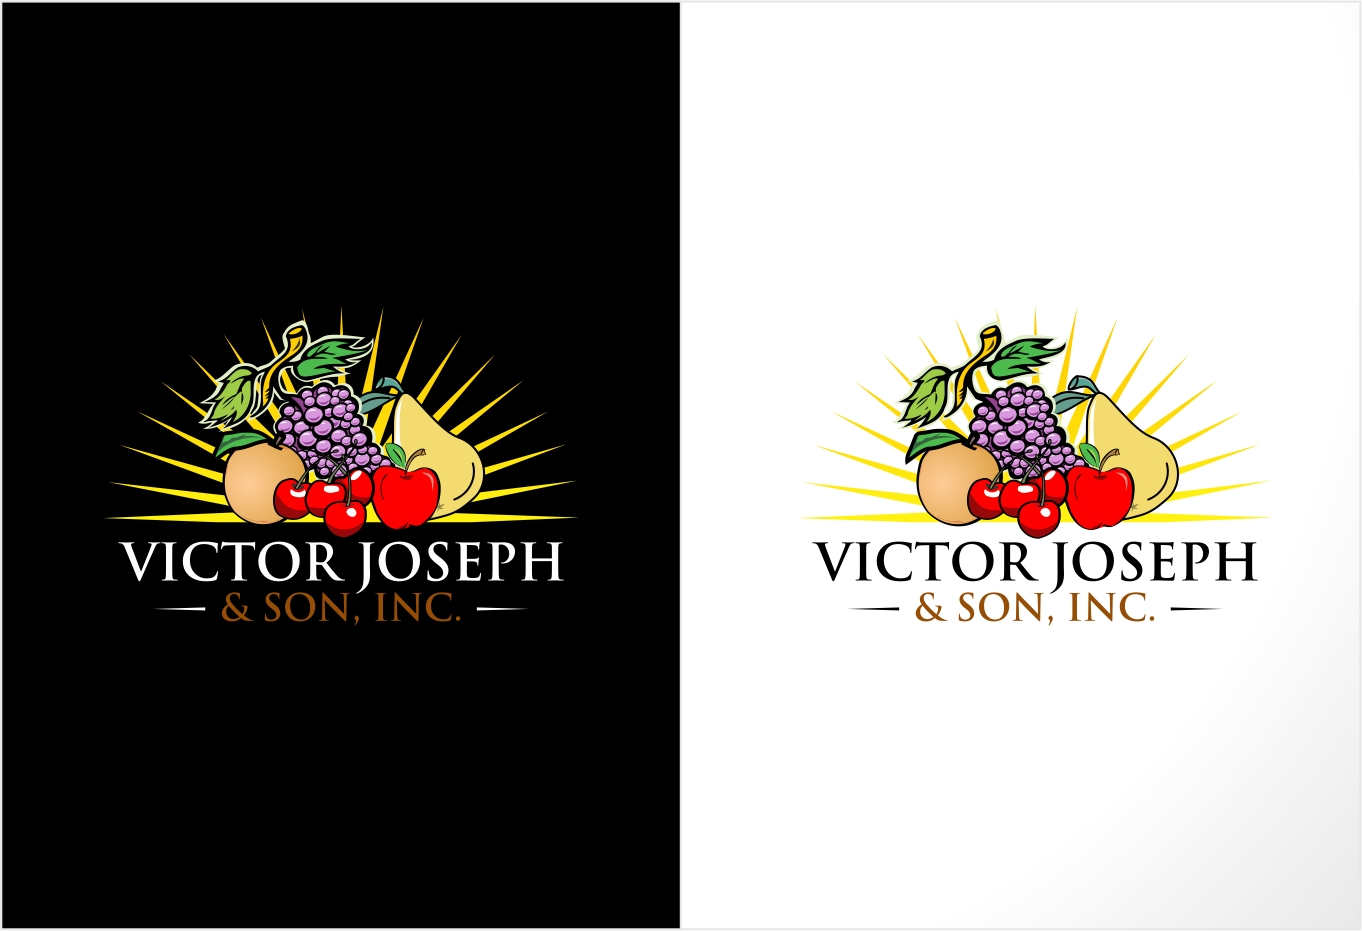 Logo Design by haidu - Entry No. 160 in the Logo Design Contest Imaginative Logo Design for Victor Joseph & Son, Inc..